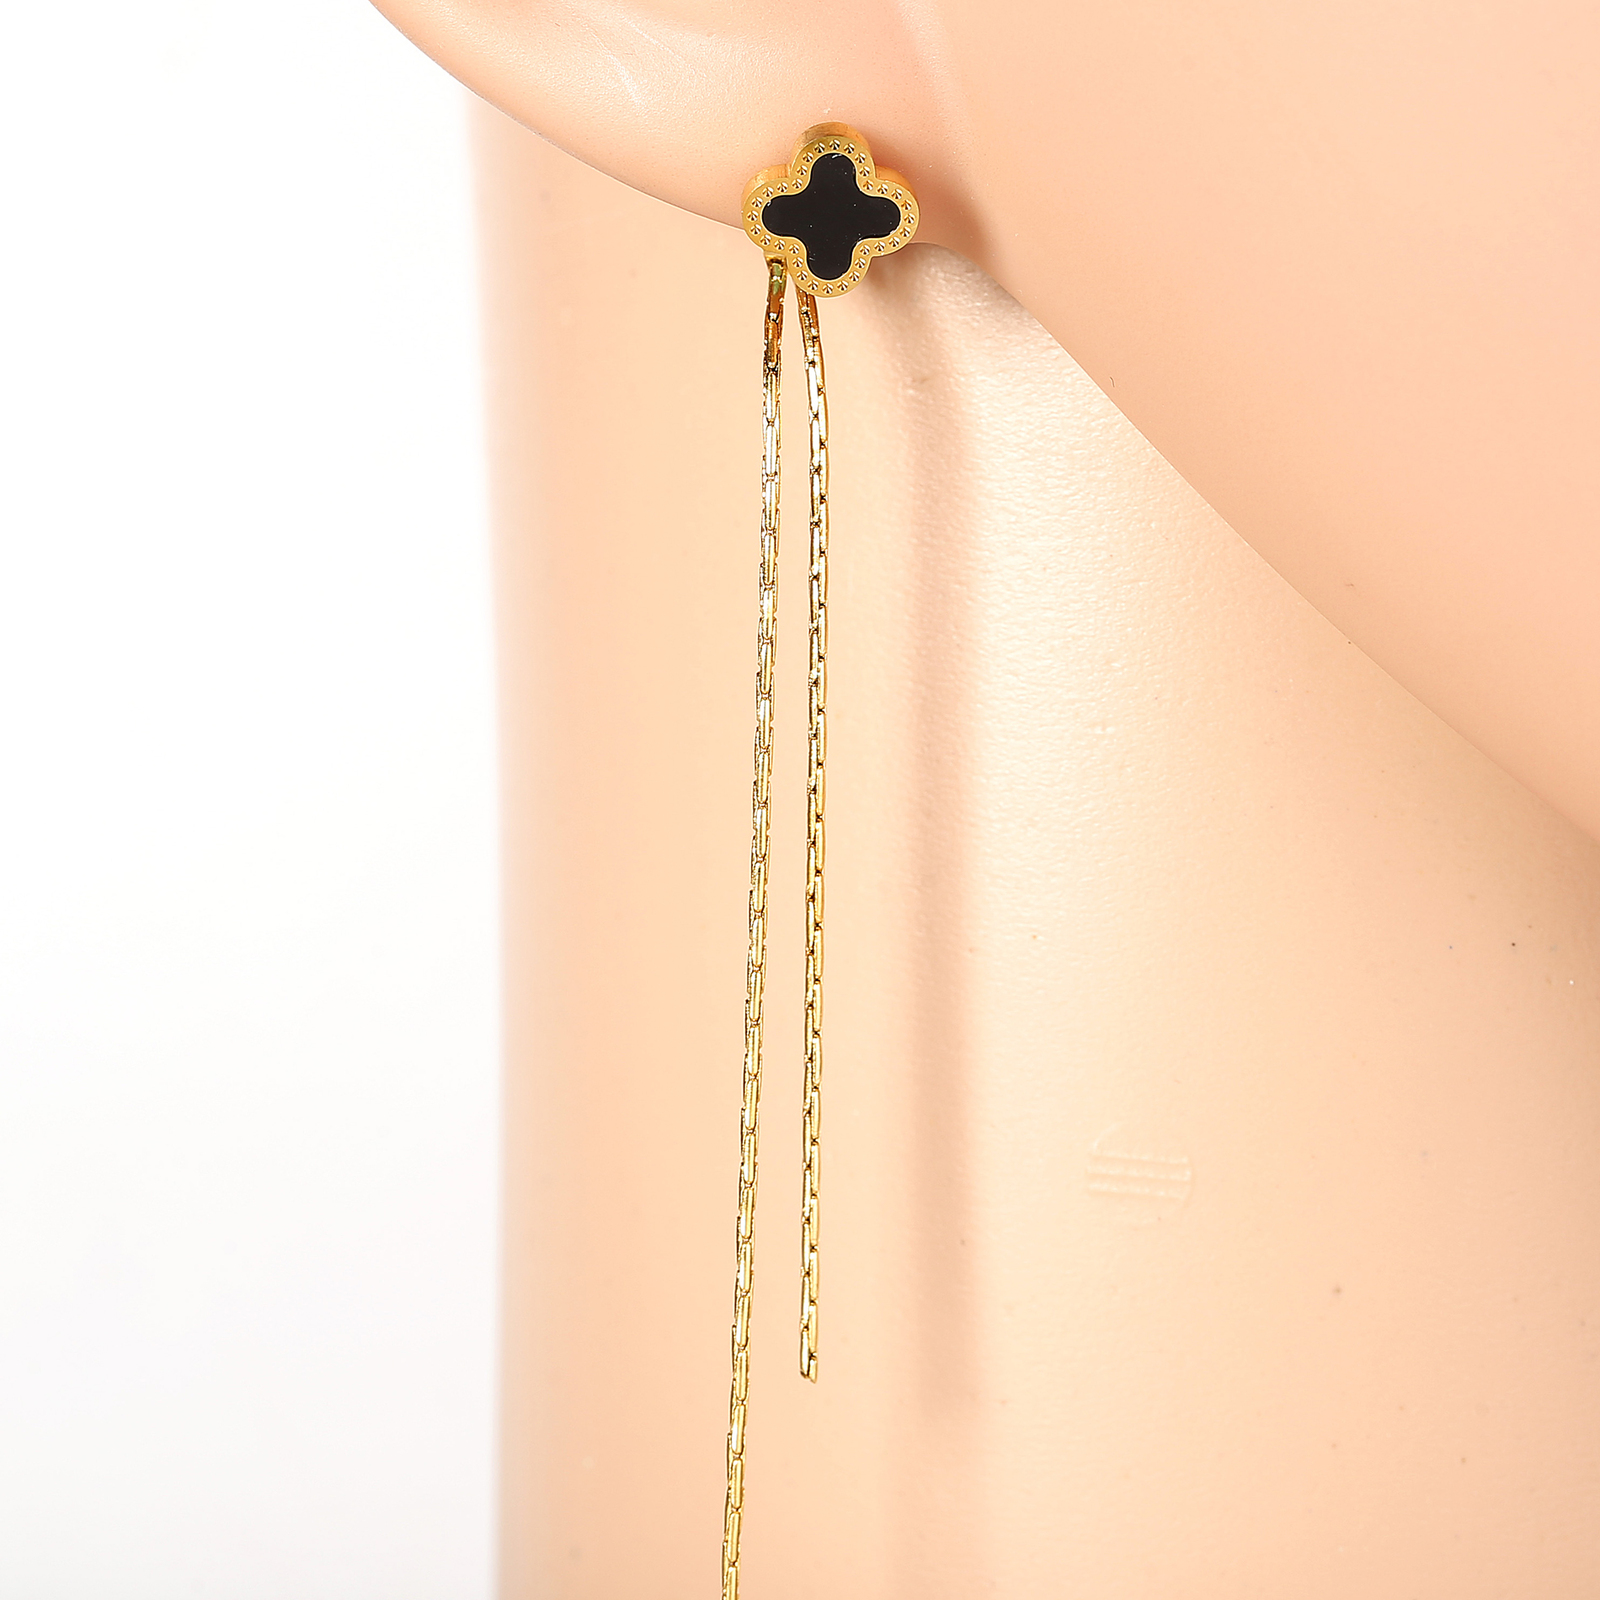 Primary image for Chic Gold Tone Designer Drop Earrings, Jet Black Faux Onyx Clover & Tassels